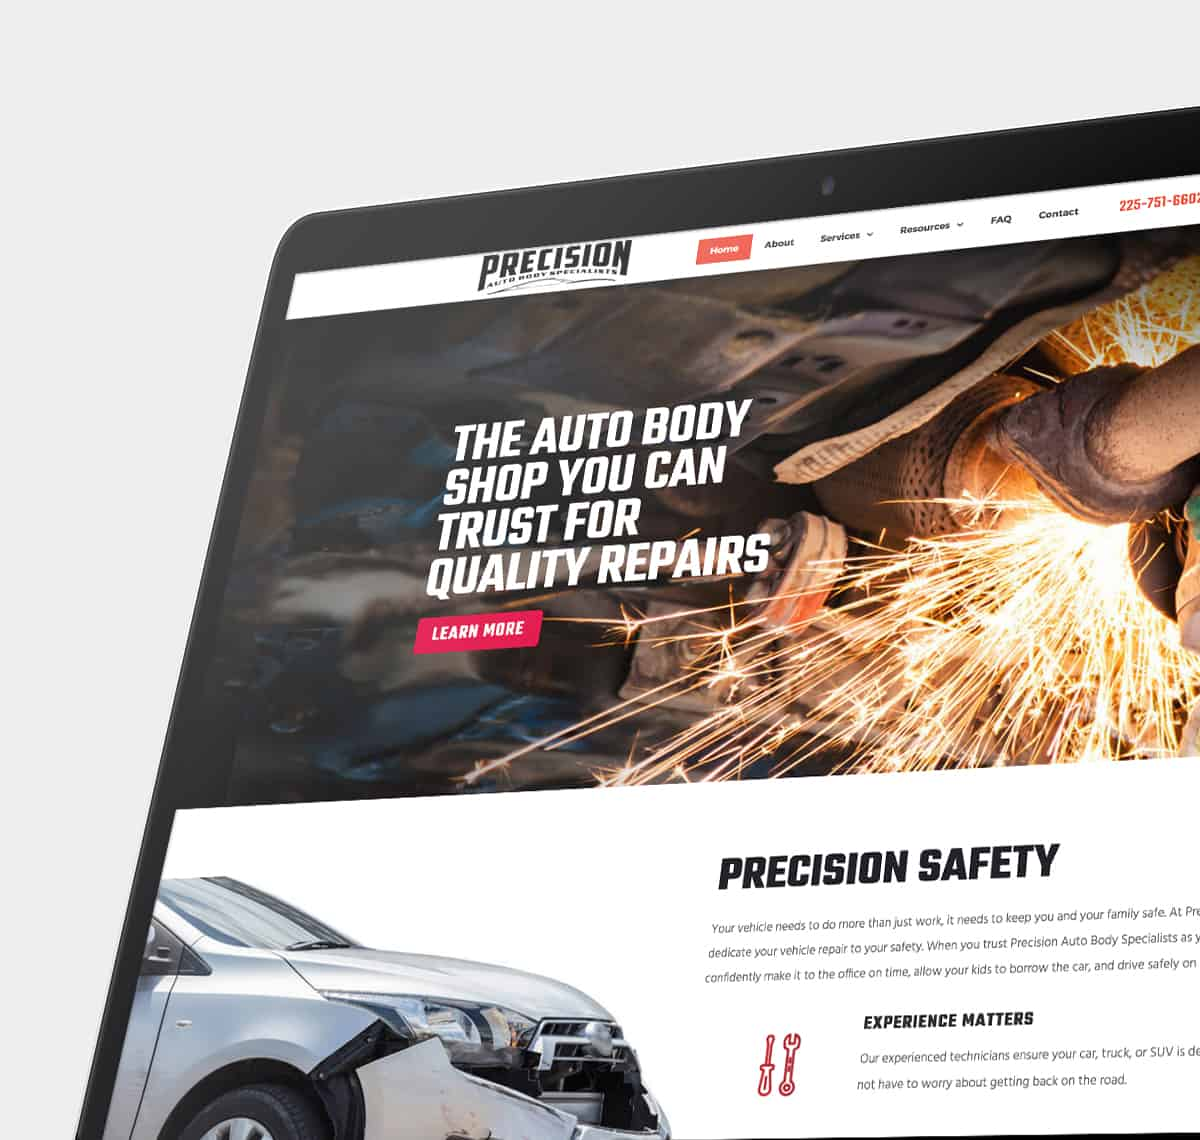 Digital screen with automotive website displayed